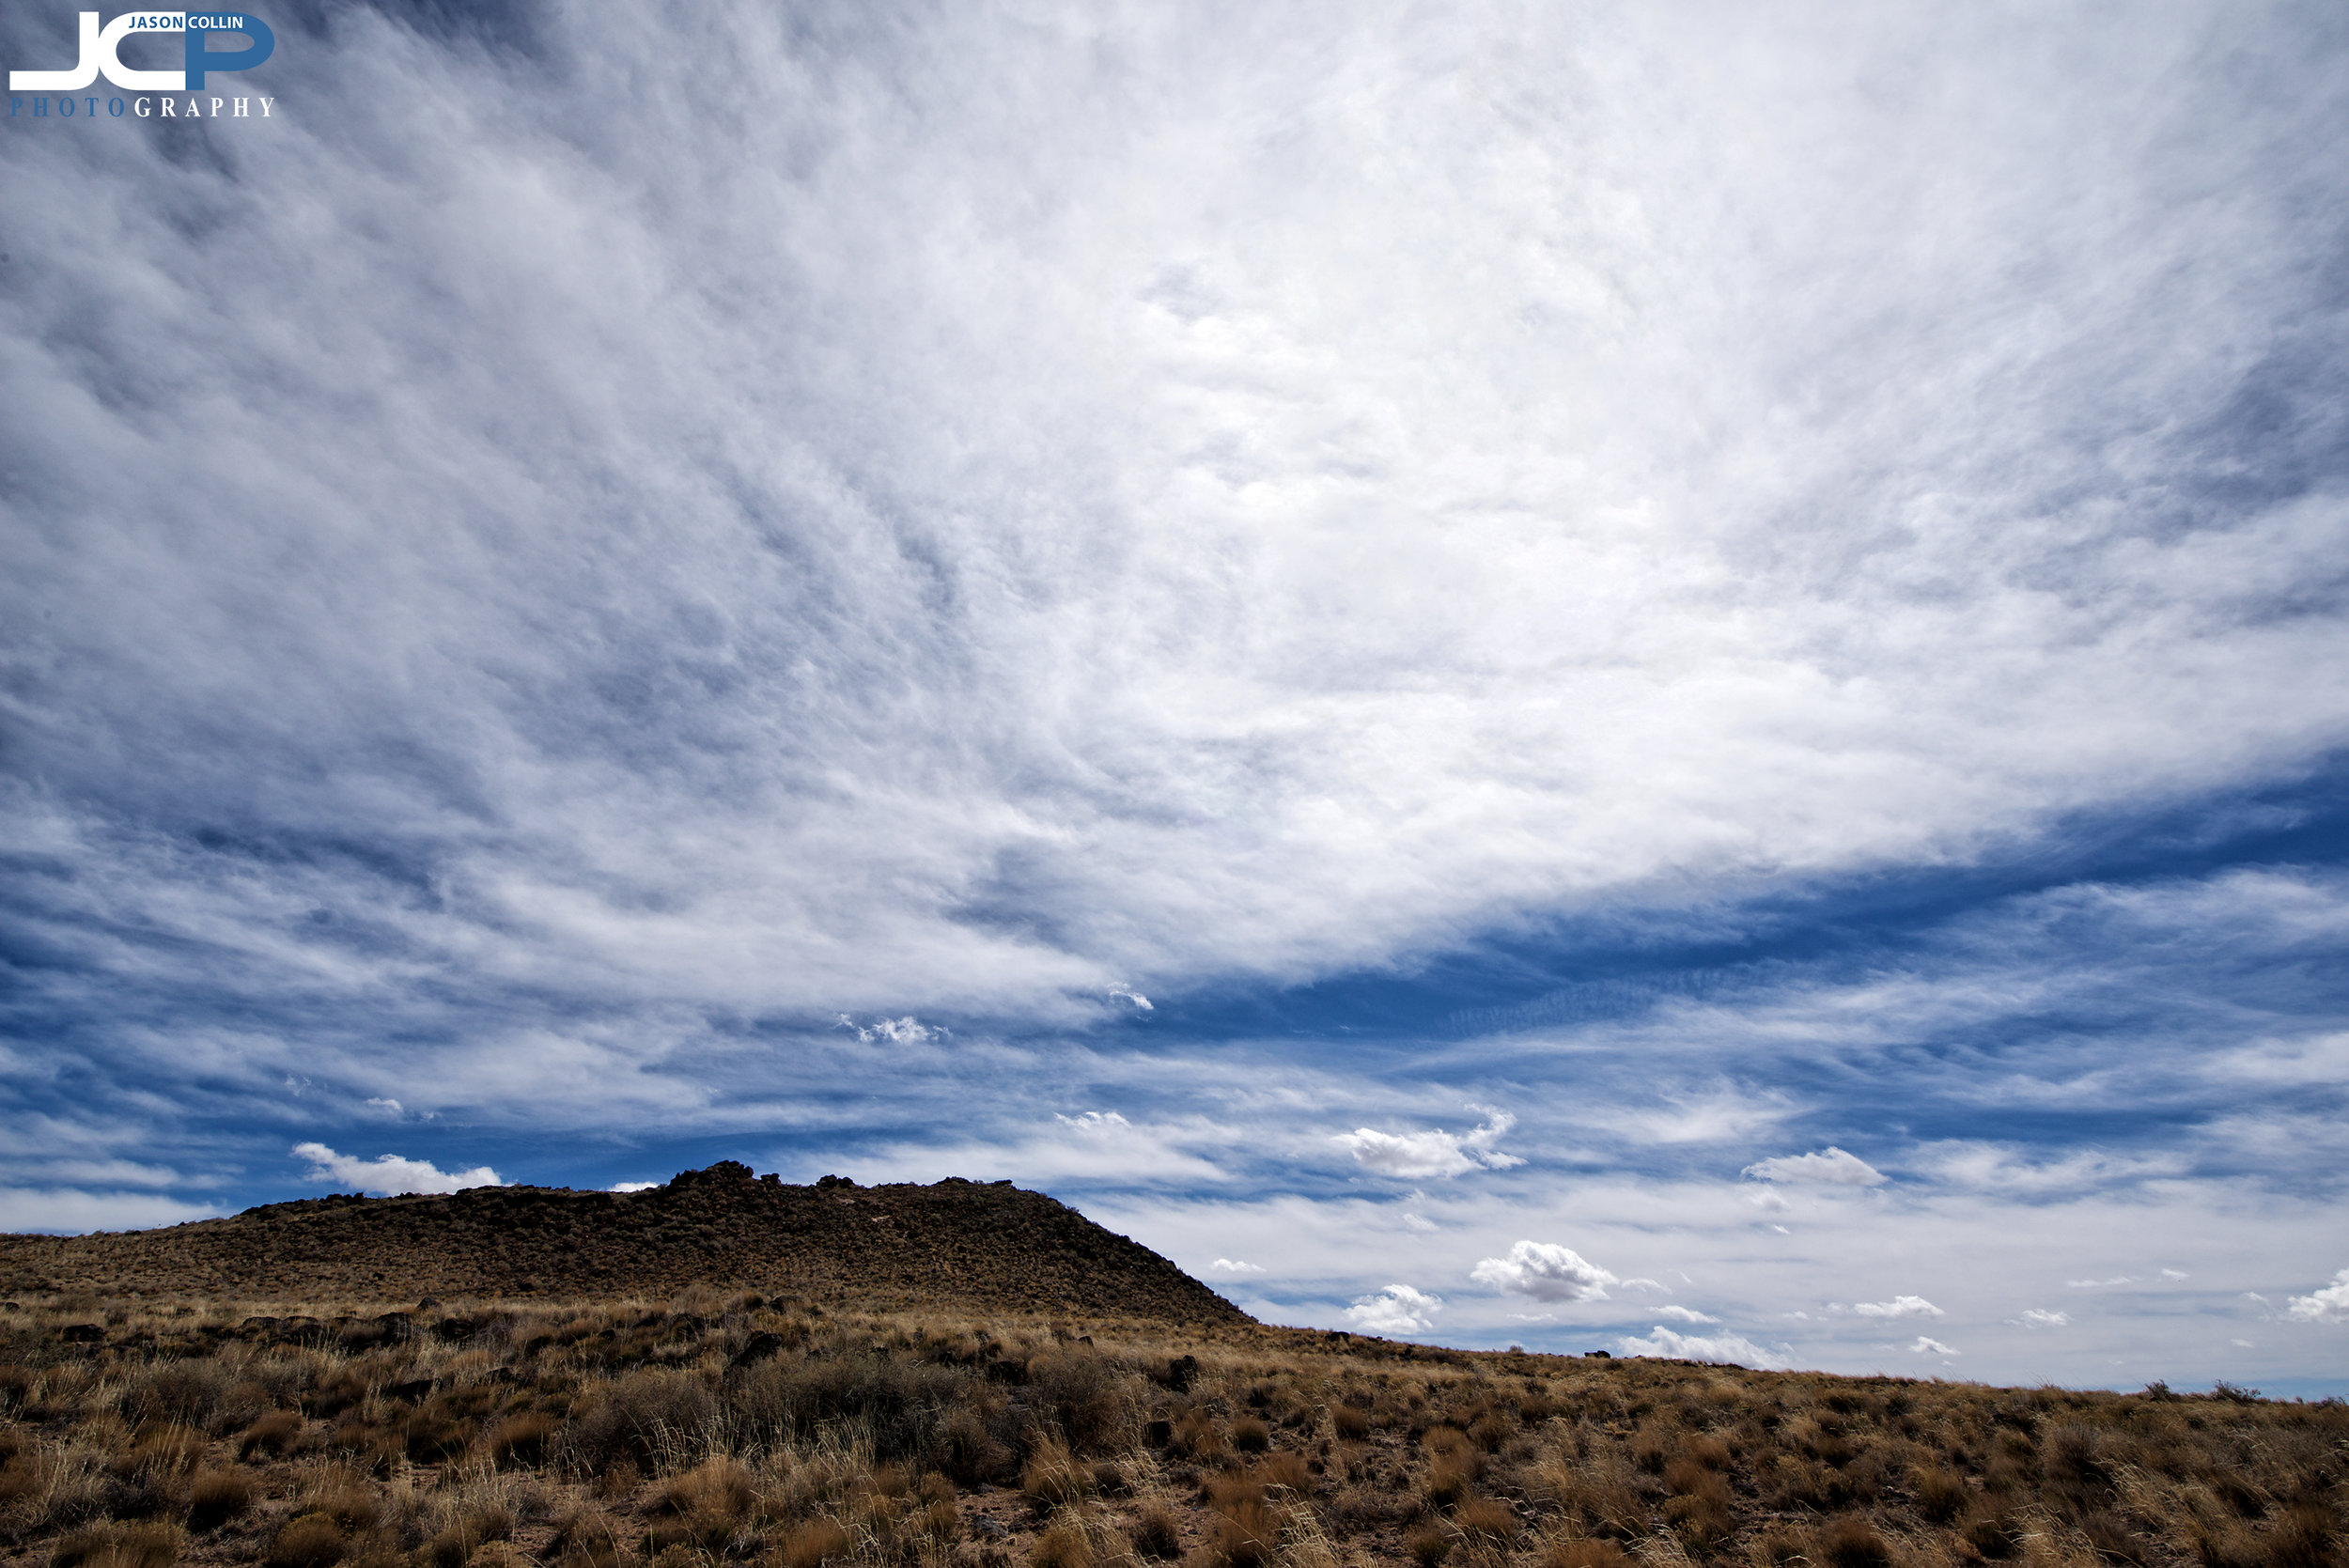 New Mexico True view of volcano in Petroglyphs - Nikon D750 with Tamron 15-30mm lens